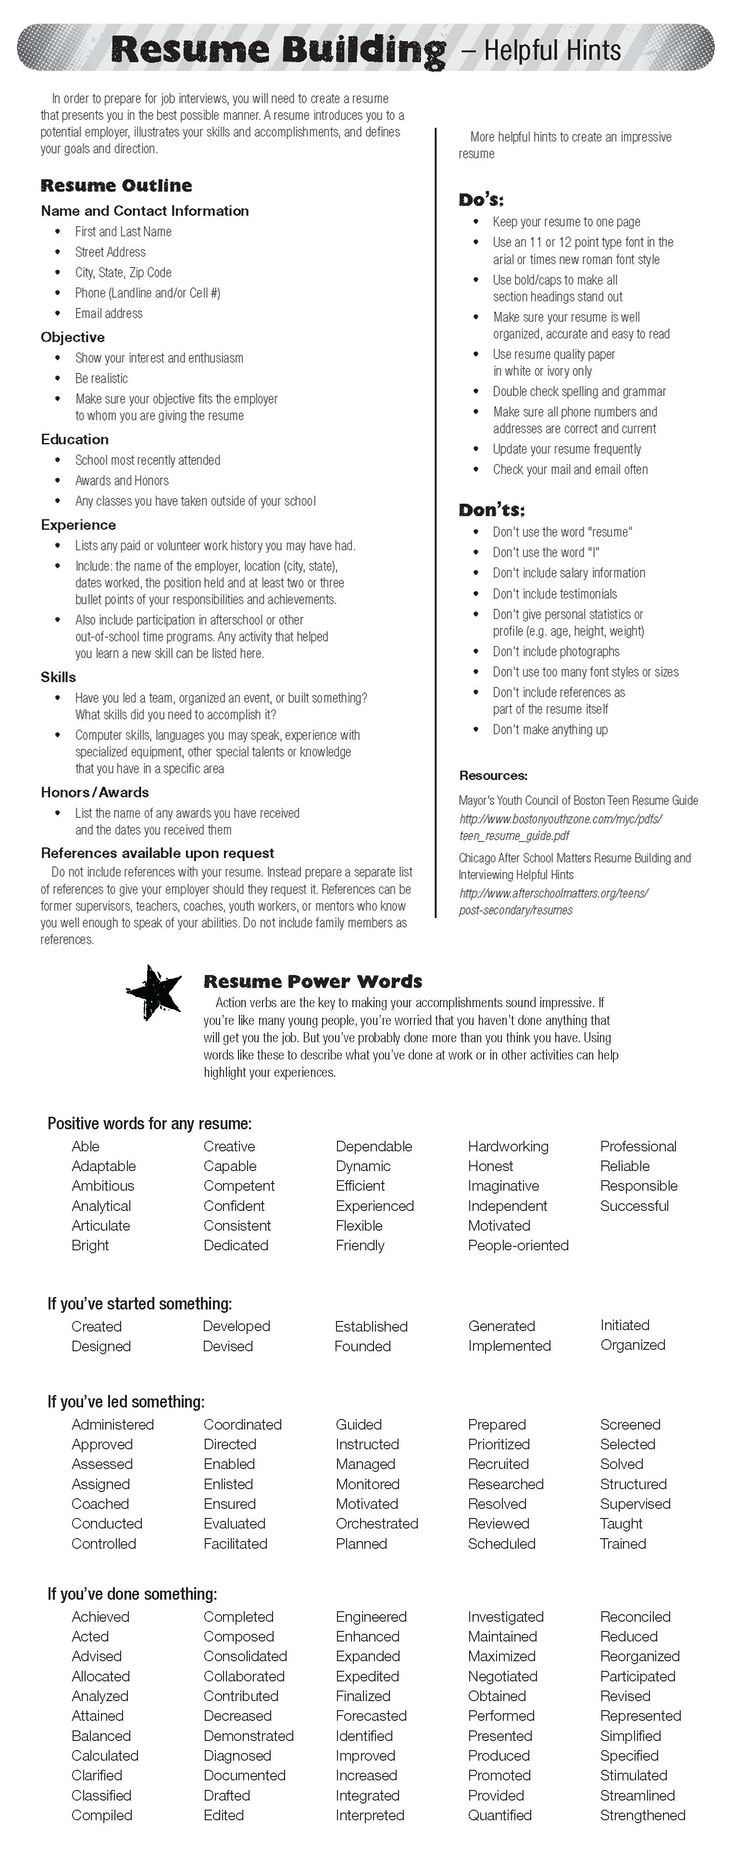 Opposenewapstandardsus  Picturesque  Ideas About Resume On Pinterest  Cv Format Resume  With Lovely Check Out Todays Resume Building Tips Resume Resumepowerwords With Alluring Introduction Letter For Resume Also Creating A Resume For Free In Addition Freshman Resume And Resume For Business Owner As Well As Management Resume Skills Additionally Resume Skills For Customer Service From Pinterestcom With Opposenewapstandardsus  Lovely  Ideas About Resume On Pinterest  Cv Format Resume  With Alluring Check Out Todays Resume Building Tips Resume Resumepowerwords And Picturesque Introduction Letter For Resume Also Creating A Resume For Free In Addition Freshman Resume From Pinterestcom